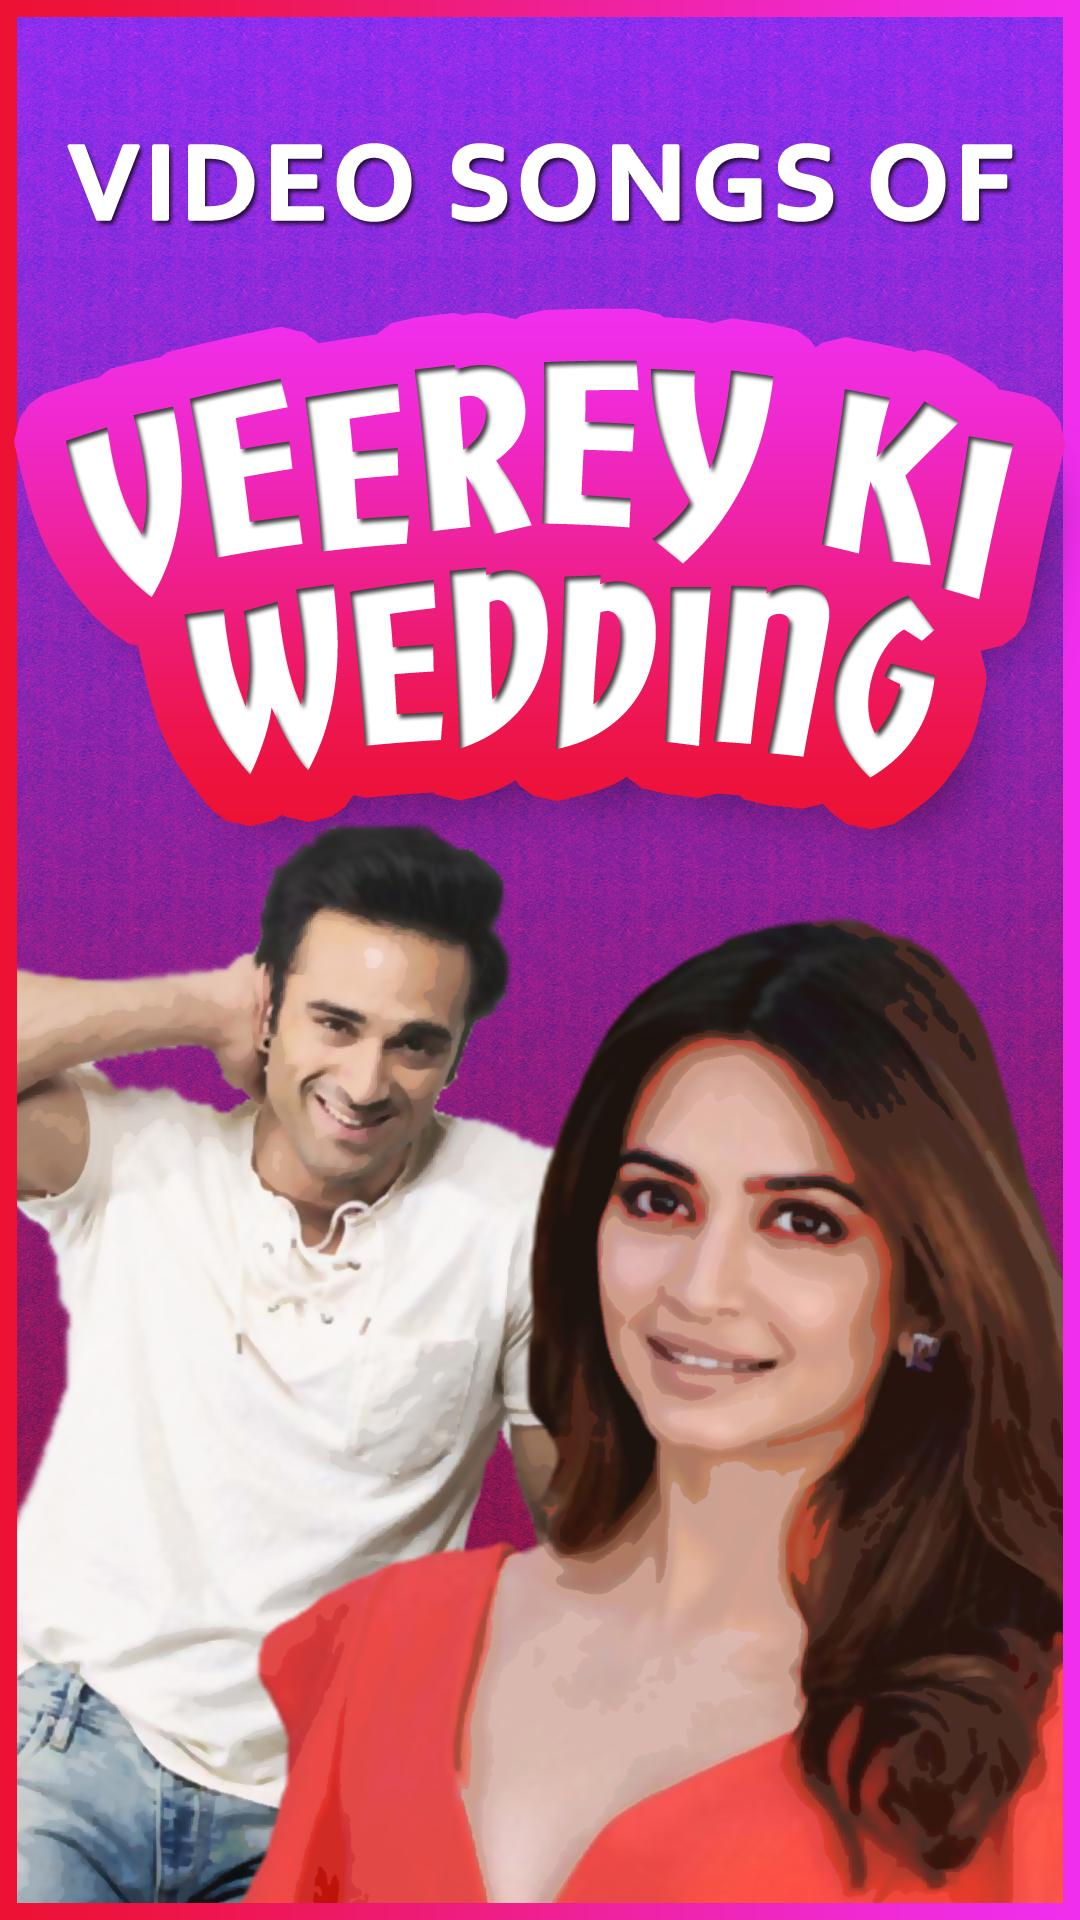 Veerey Ki Wedding.Veerey Ki Wedding Songs Latest Bollywood Songs For Android Apk